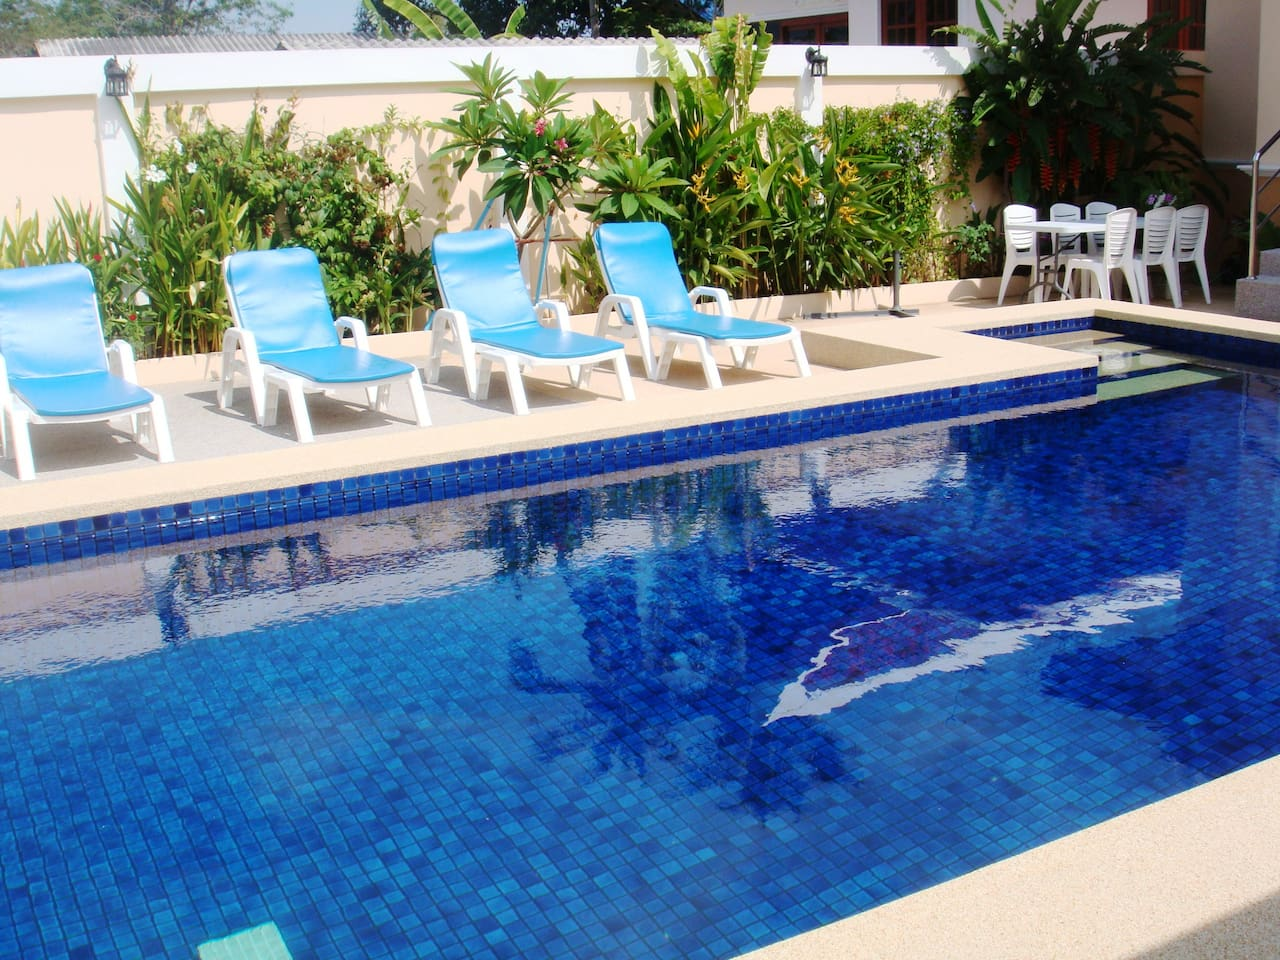 Pool area 8x4 meter saltwater pool with 6 lounge chairs and alfresco dining area for 6.